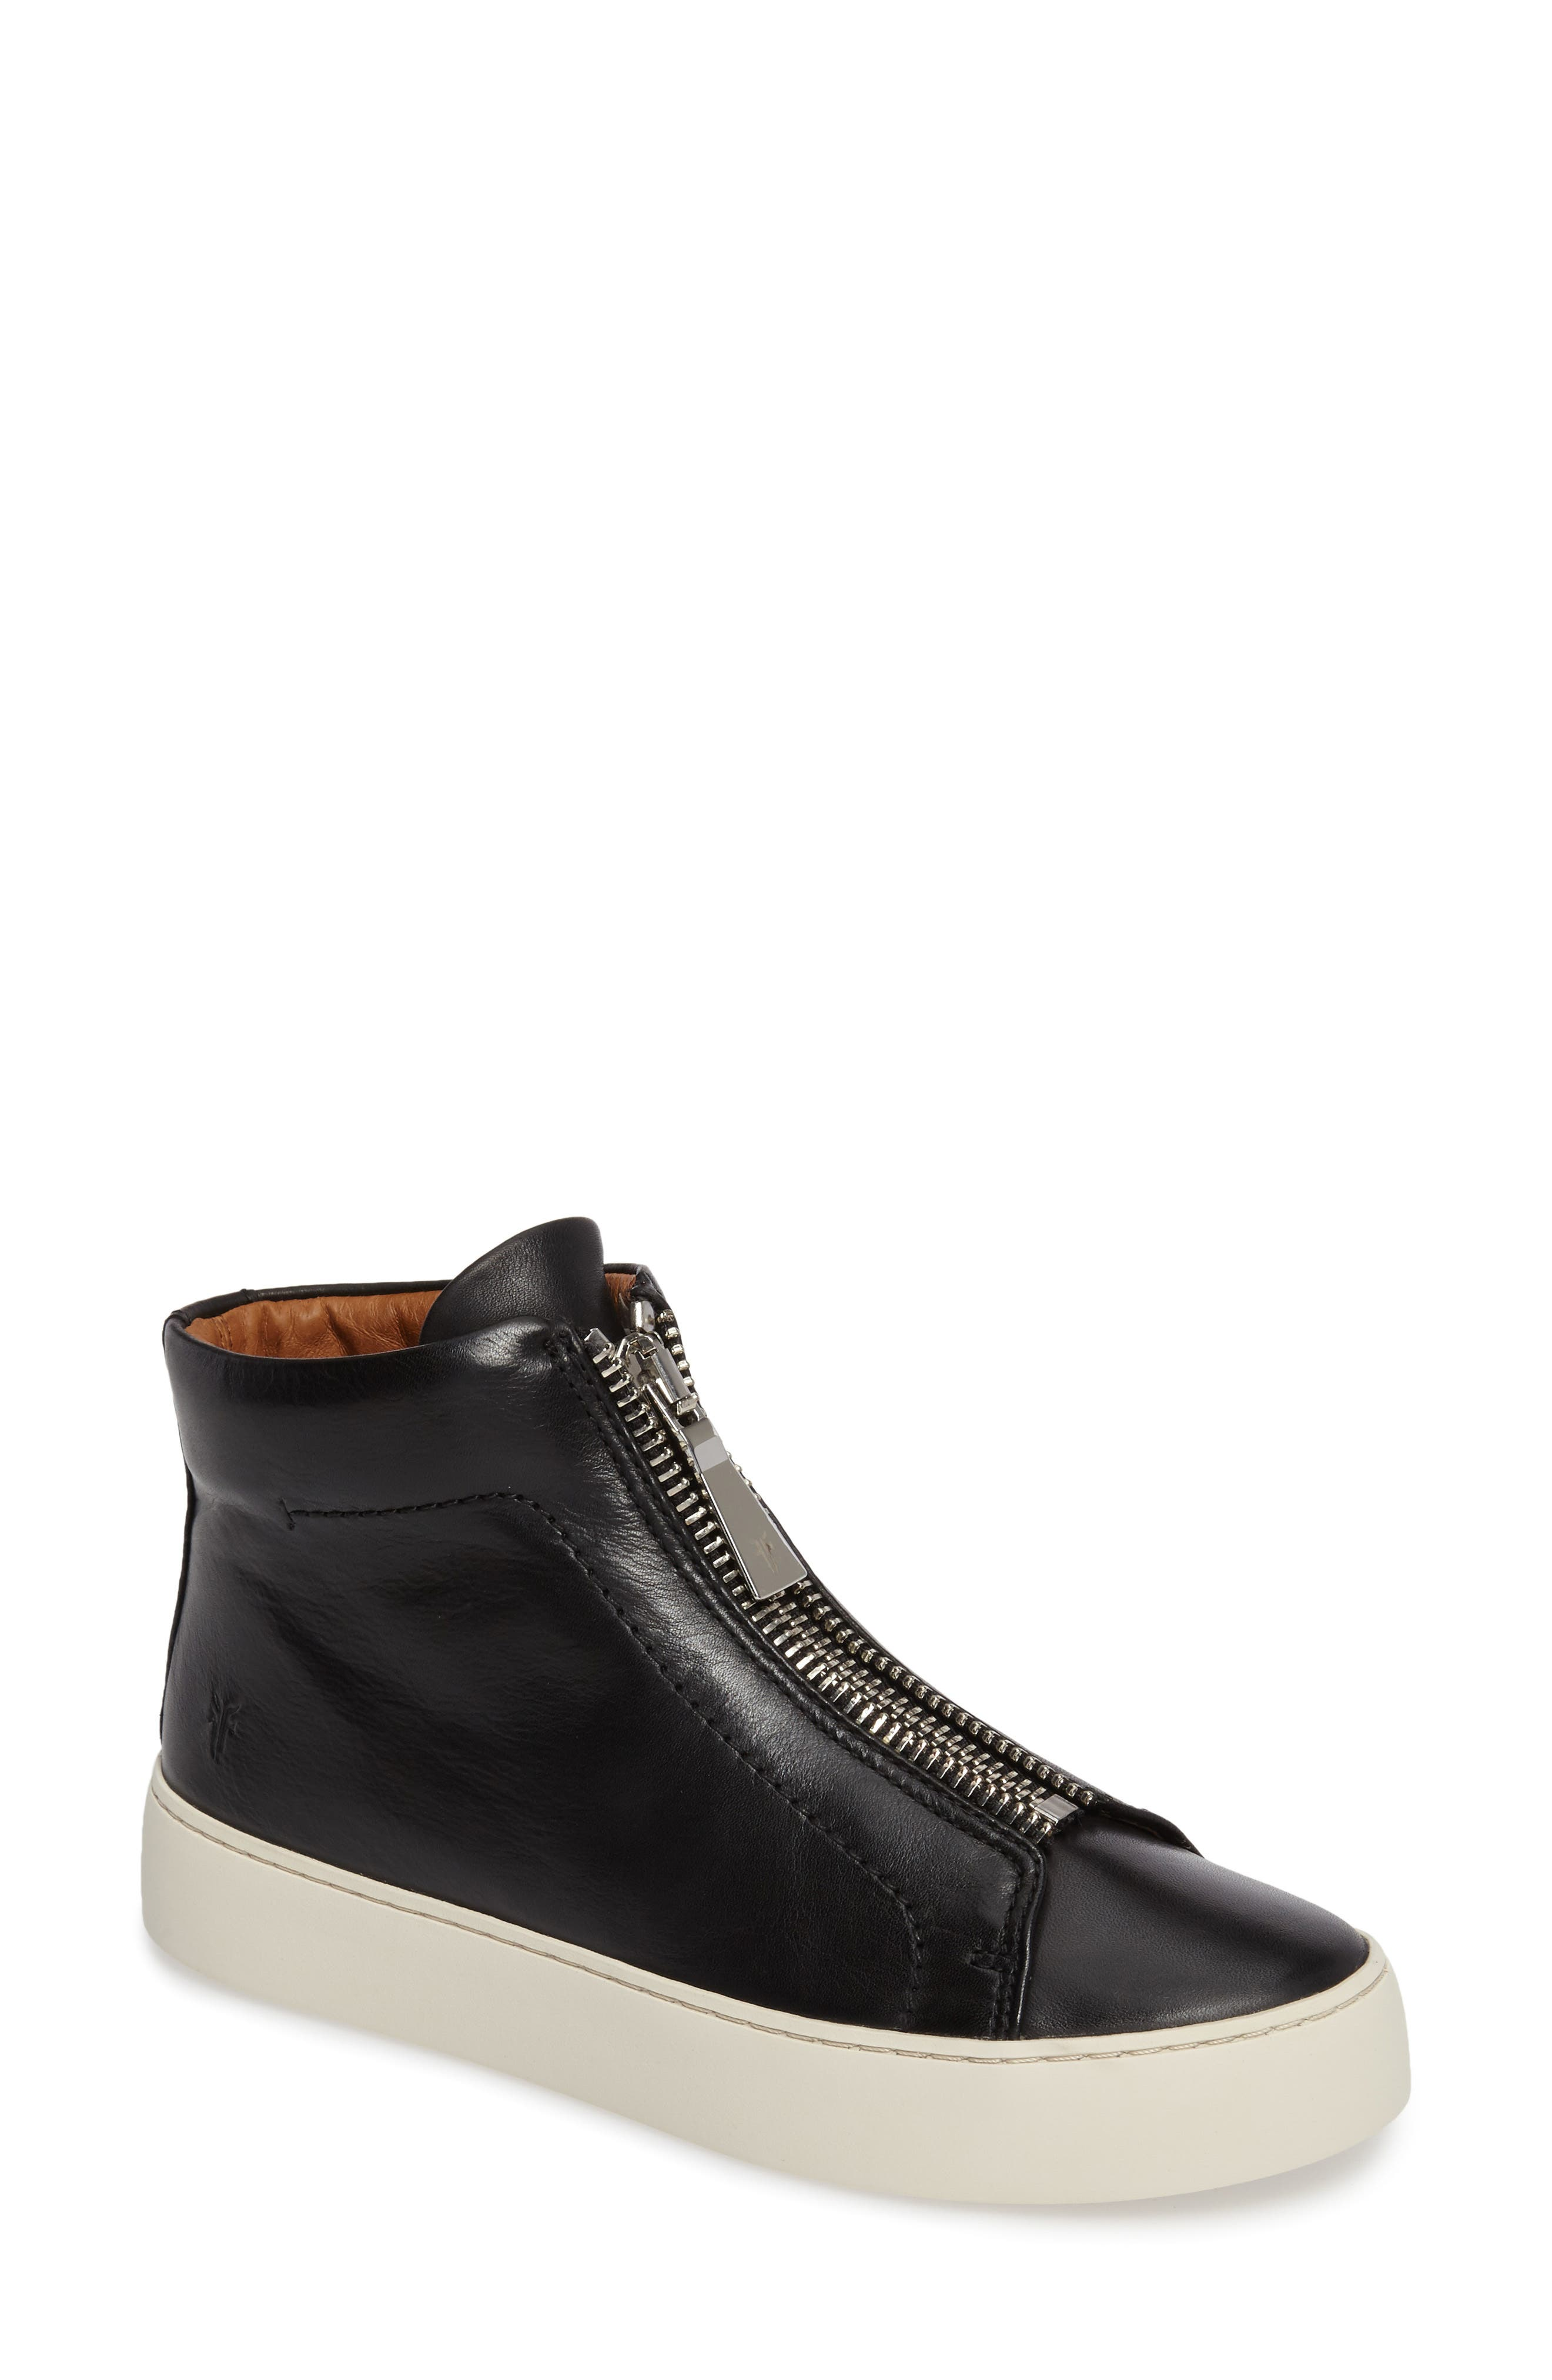 Women'S Lena Zip Up Leather High Top Sneakers in Black Leather